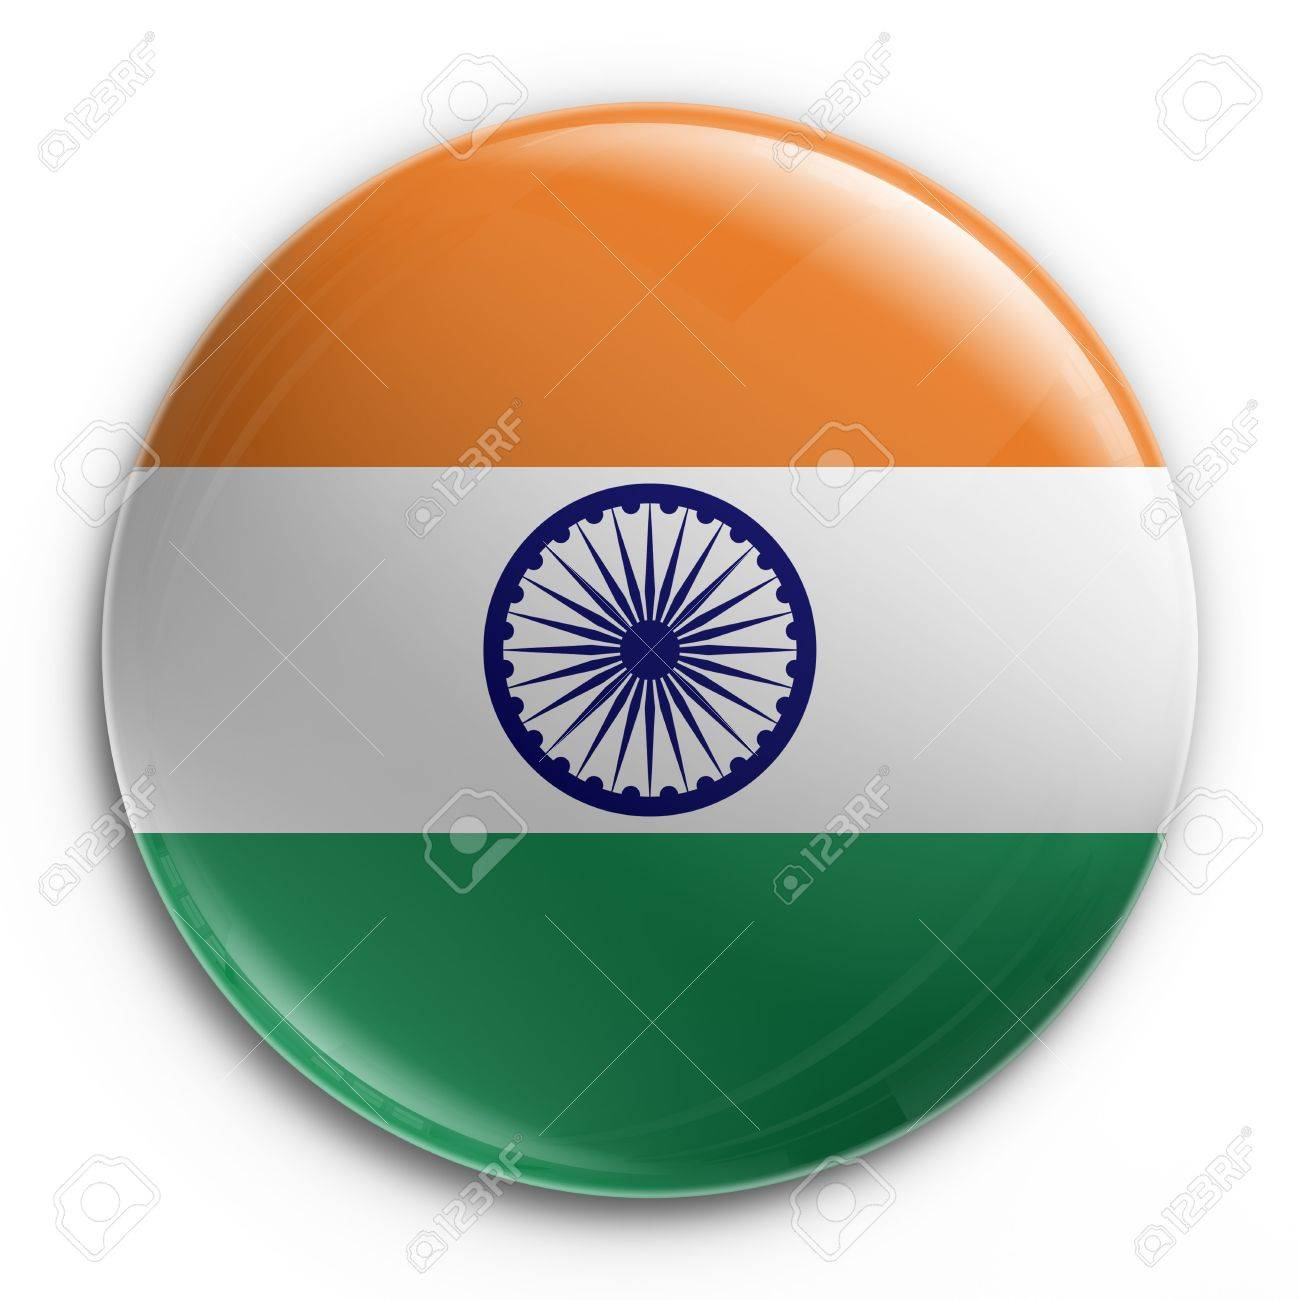 3d rendering of a badge with the Indian flag Stock Photo - 3279341